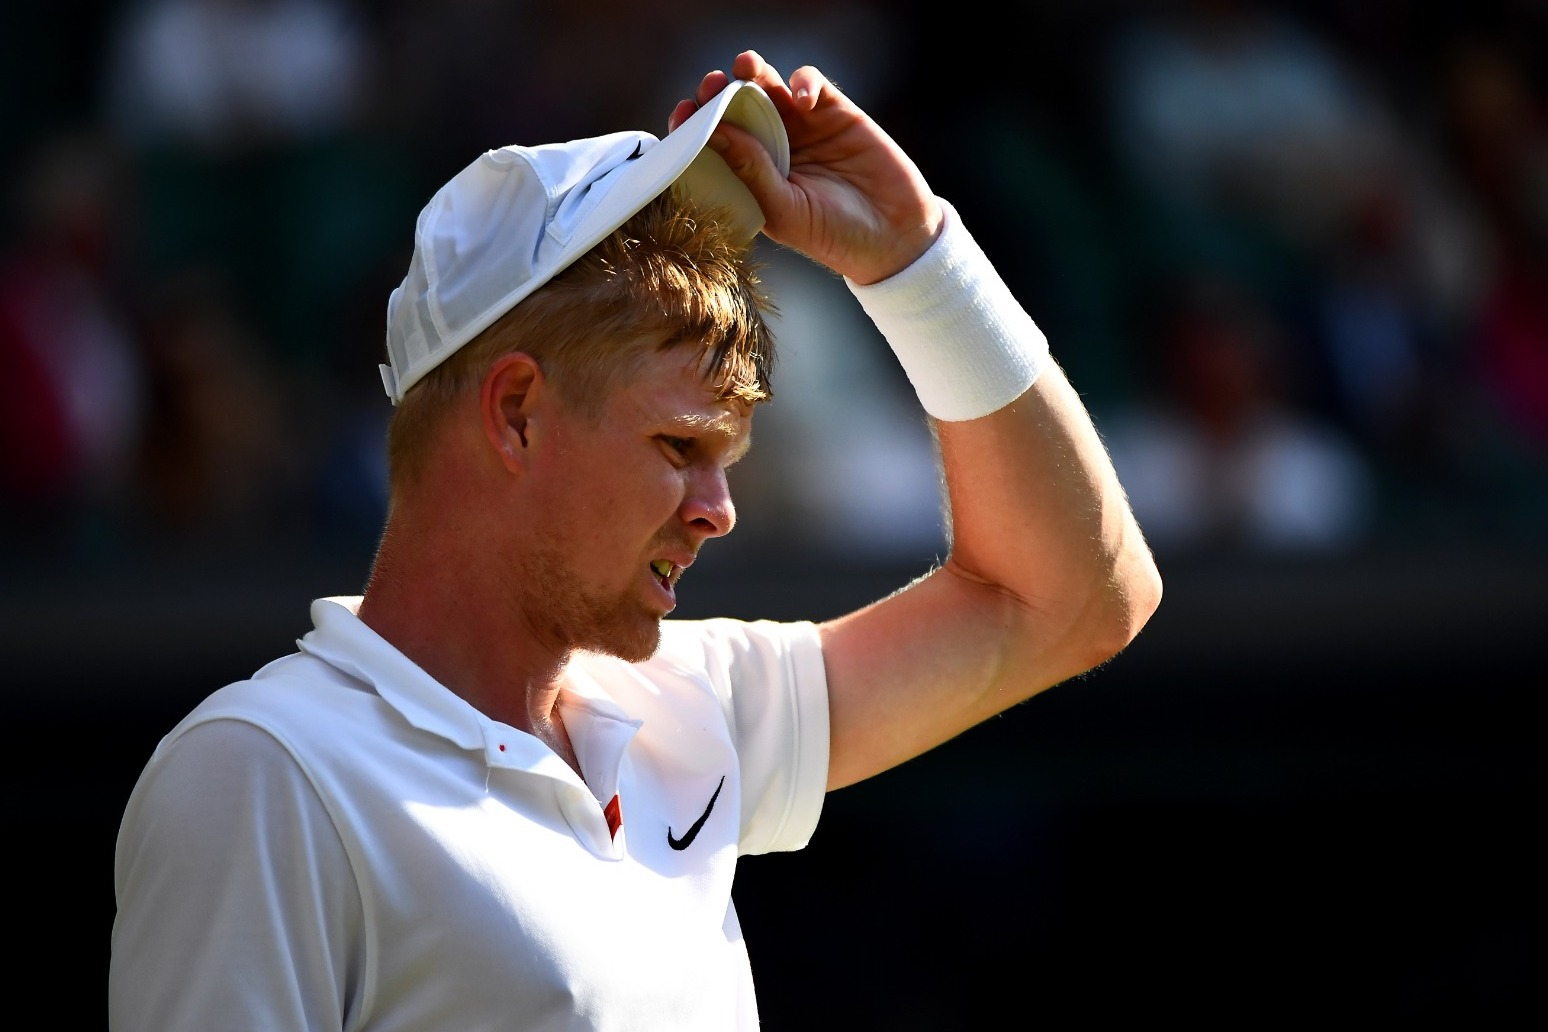 Britain's Kyle Edmund pulls out of US Open due to knee injury